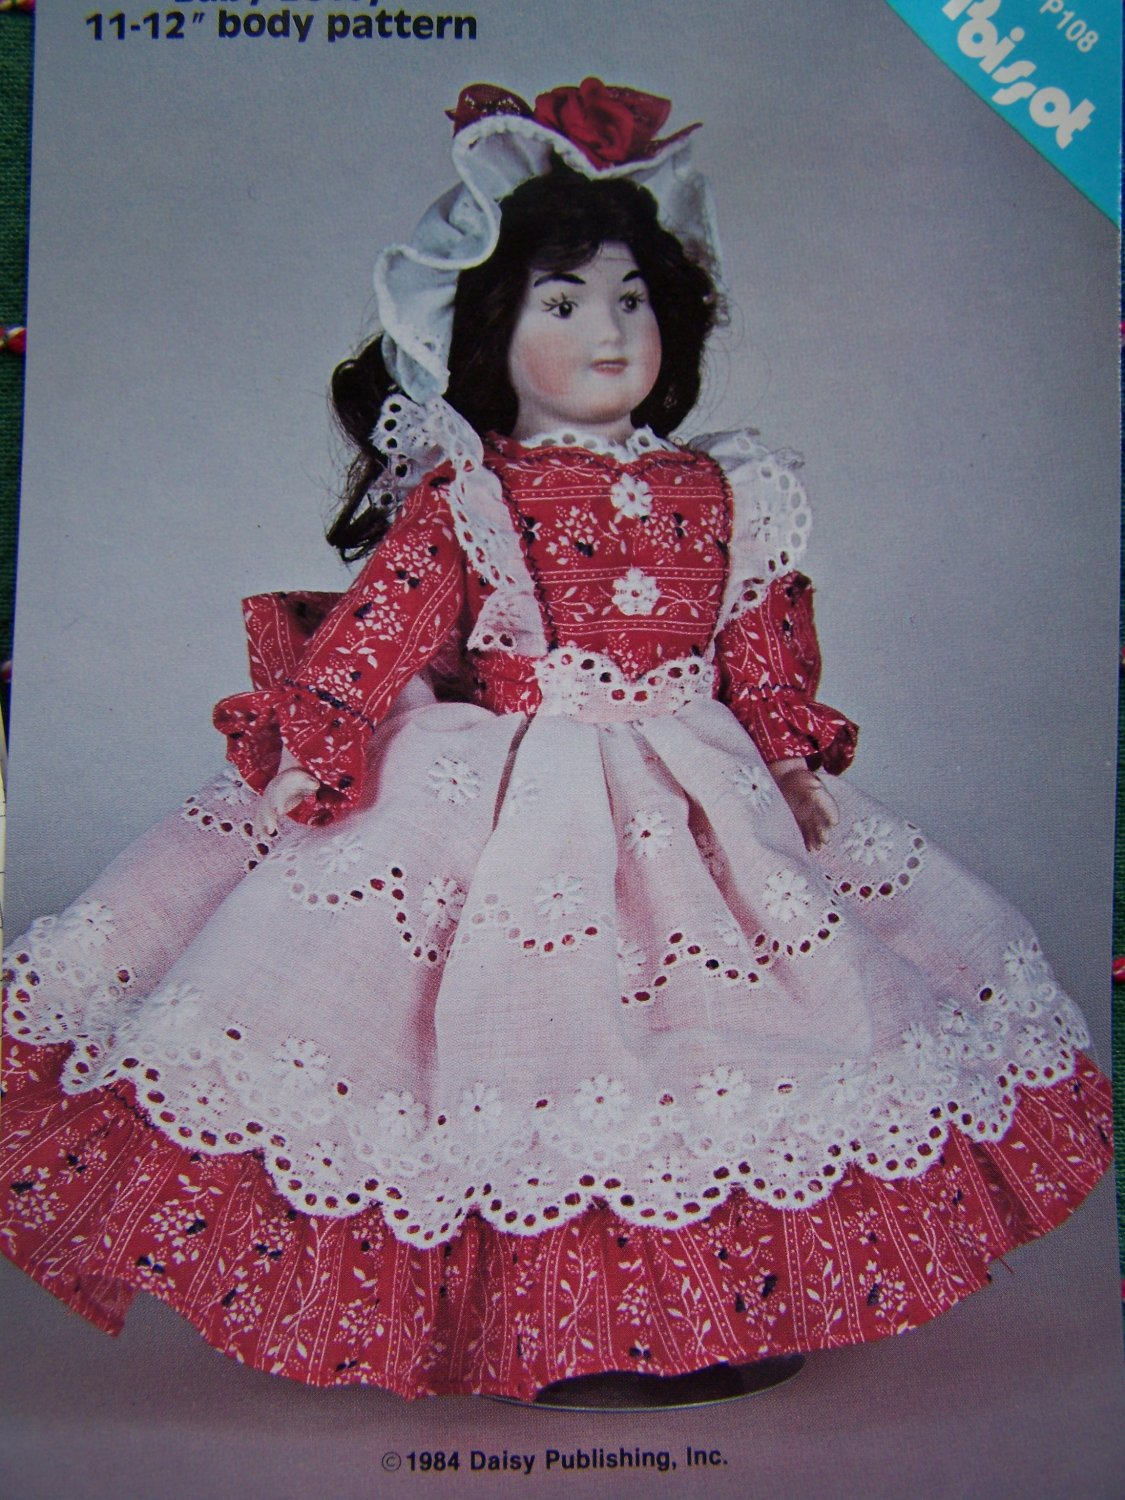 USA 0 S&H Vintage Sewing Pattern Doll Dress & Hat DPP108 Poissot 11 - 12 Inch Dolls